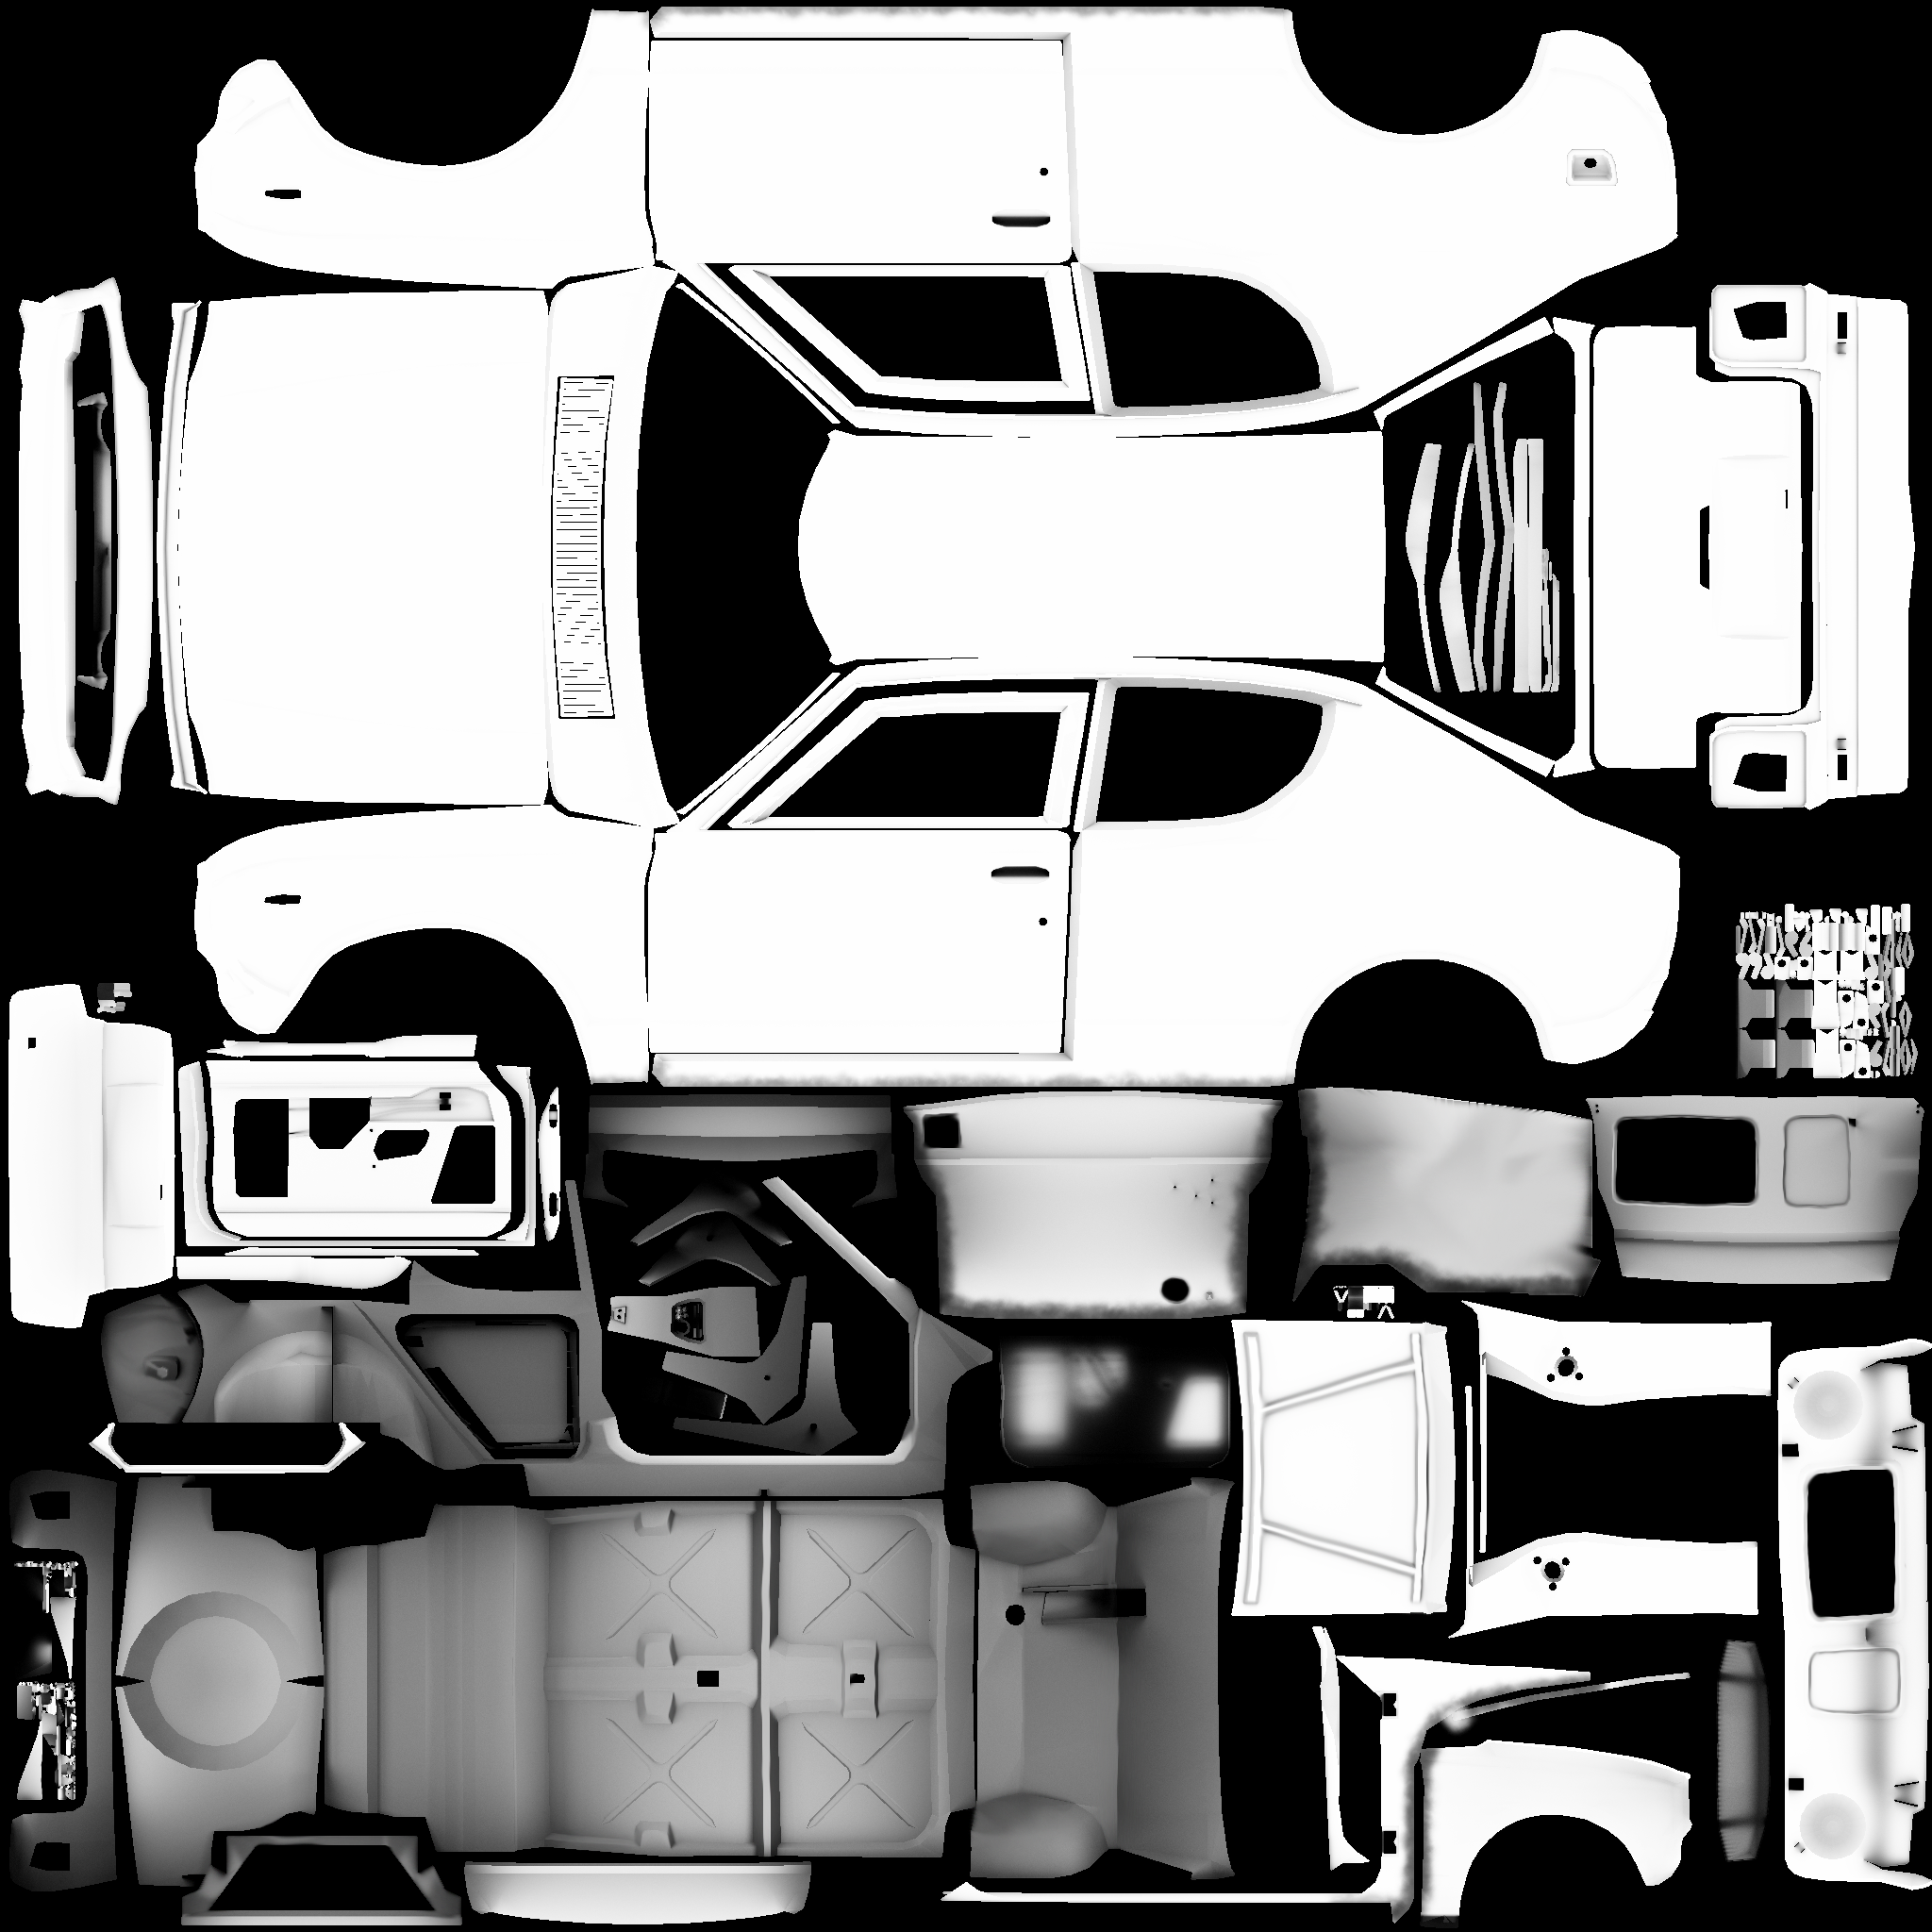 Download Overlay My Summer Car Skin Png Image With No